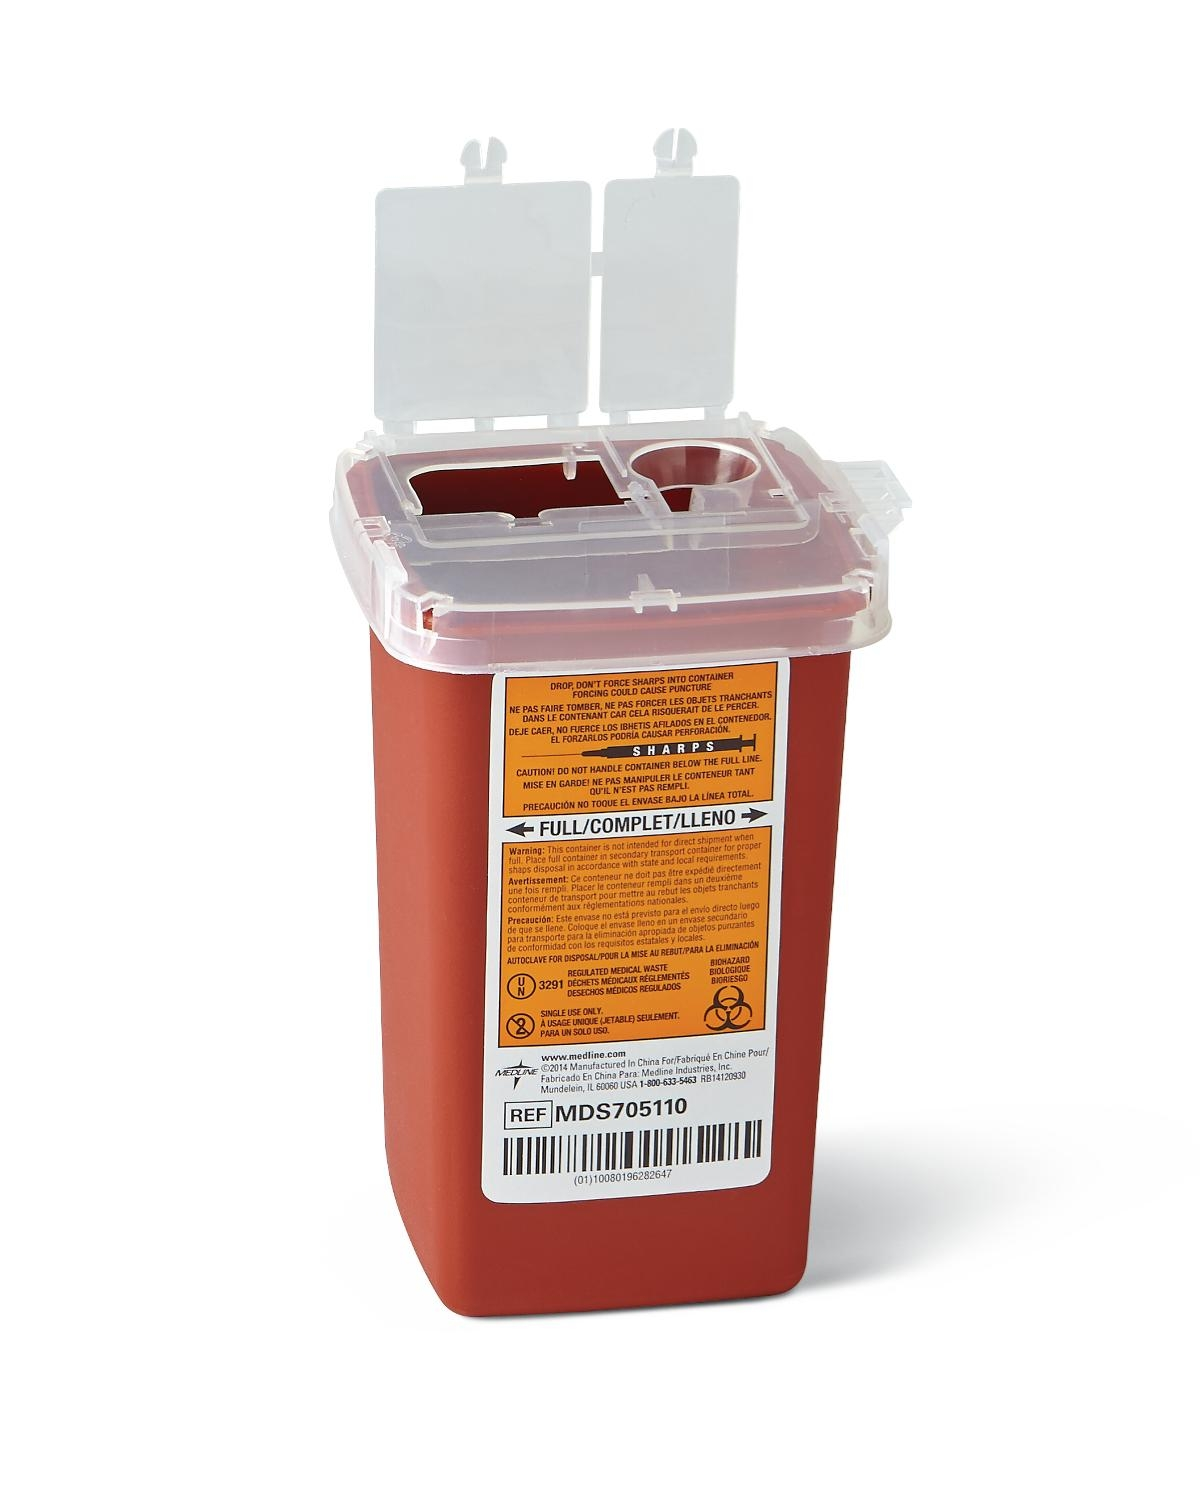 Nursing Supplies & Patient Care Sharps Containers - Mds705110h - Container Sharps 1 Qt. Red Phleb. MDS705110H